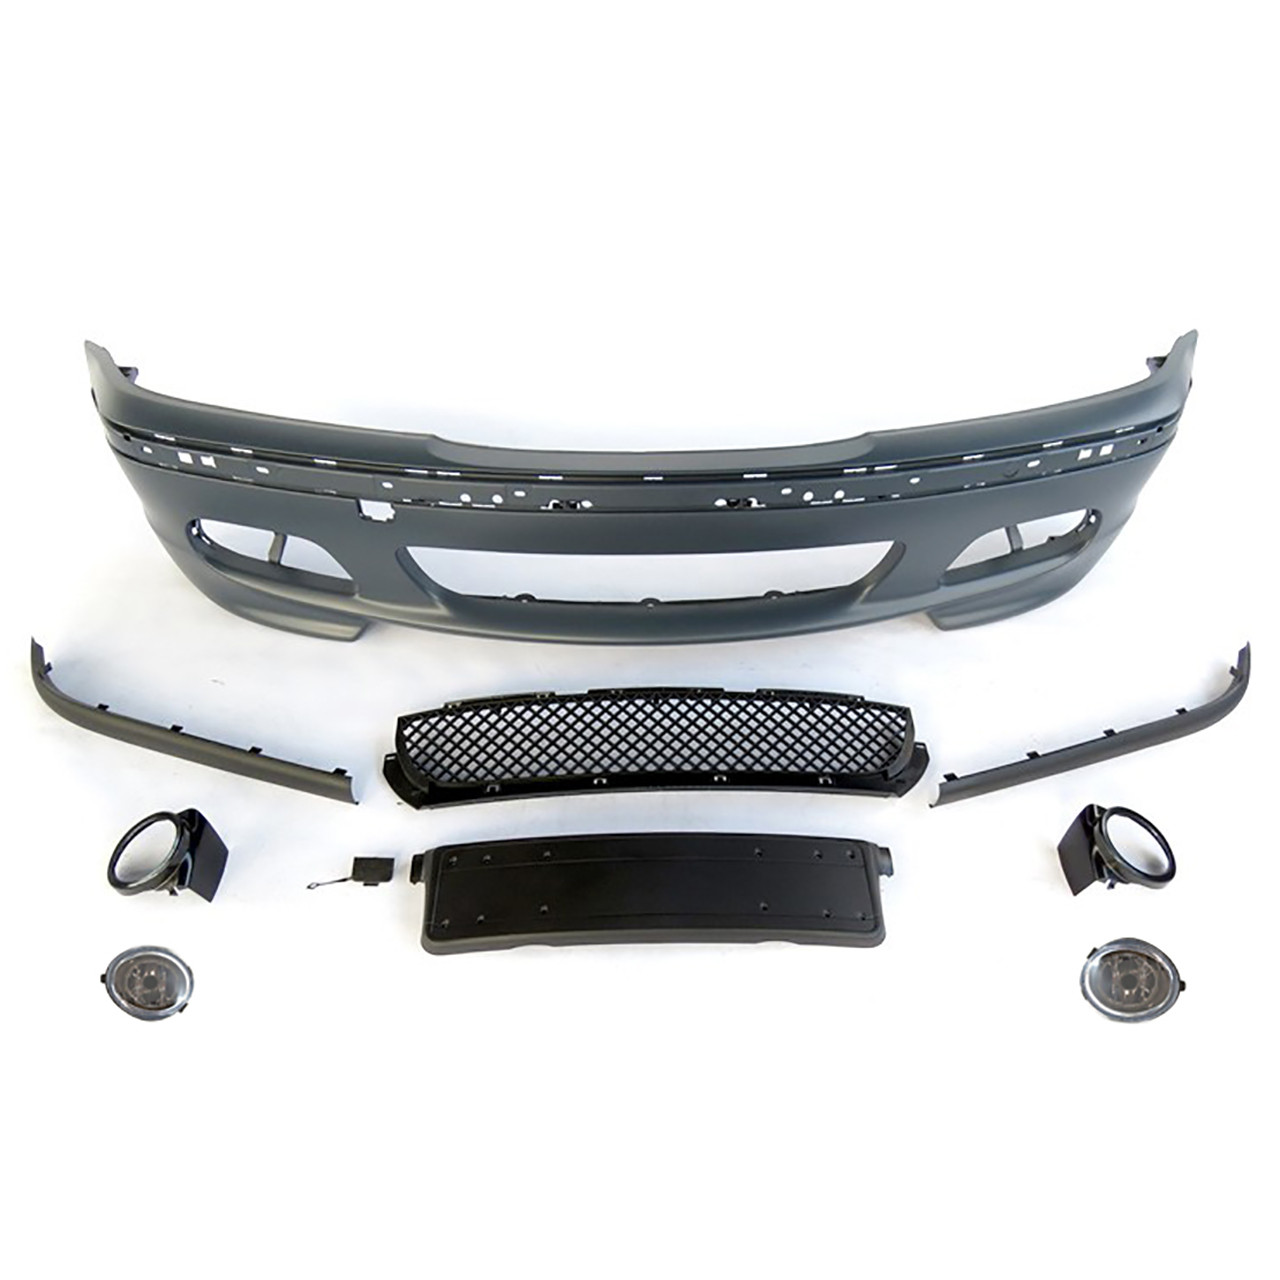 Kit Exterior BMW Seria 3 E46 Limousine (98-05) M-Tech Design